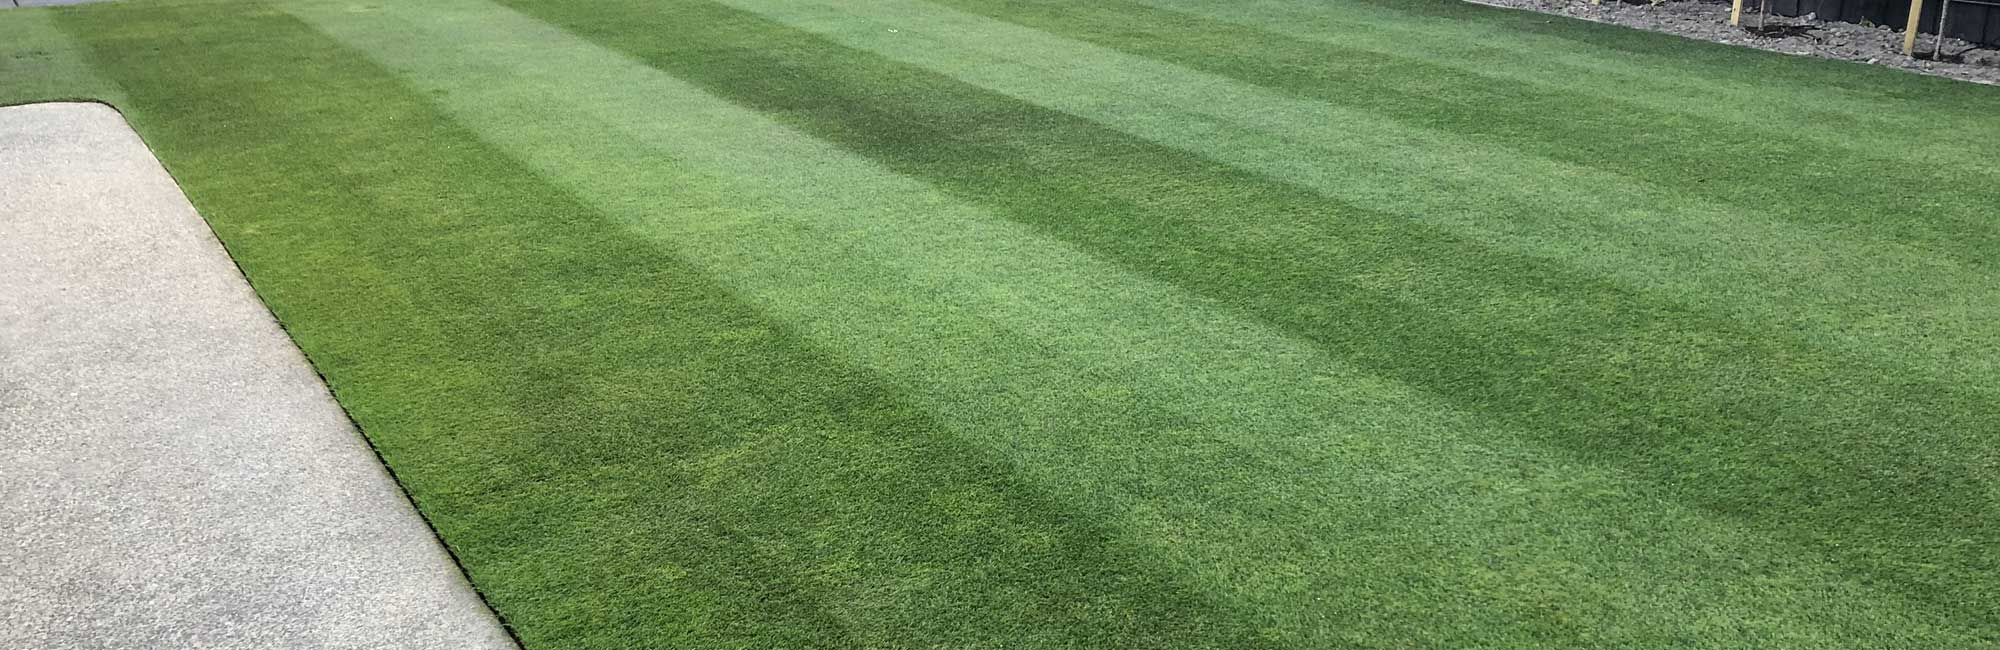 Christchurch lawn mowing services with Wright Lawn Care